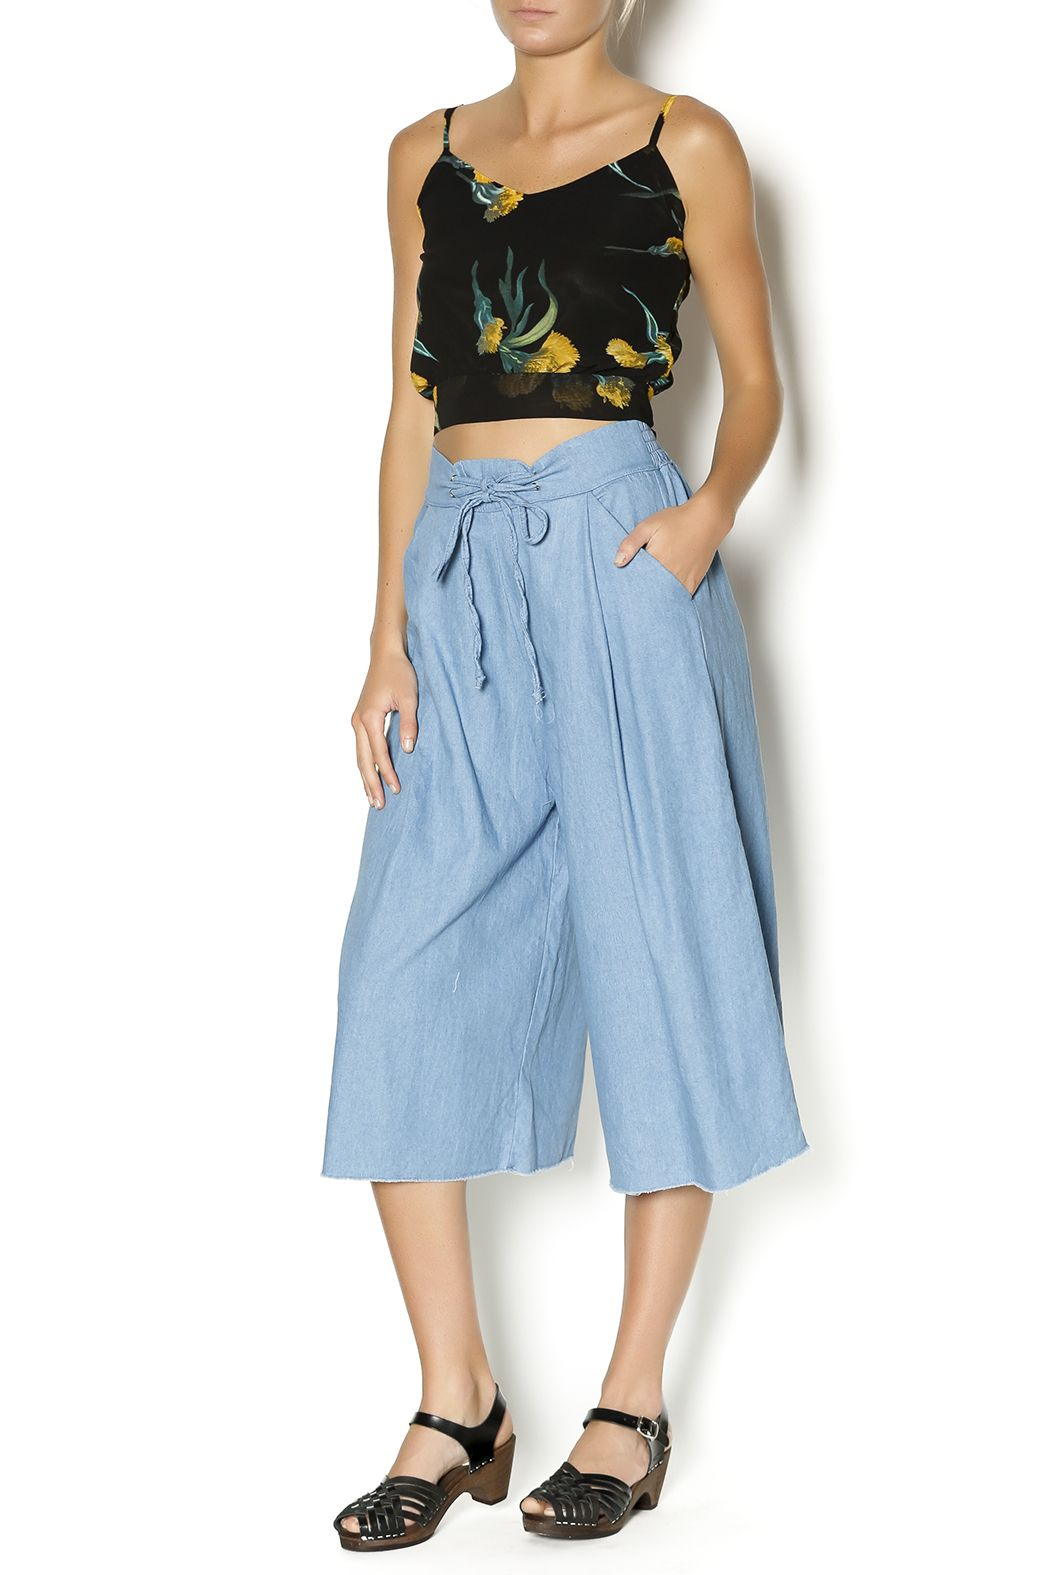 Perfect 90's inspired crop top. You can easily dress this up or down. Pair with high rise shorts and sneakers. Or a cute A line skirt for a more dressy look.